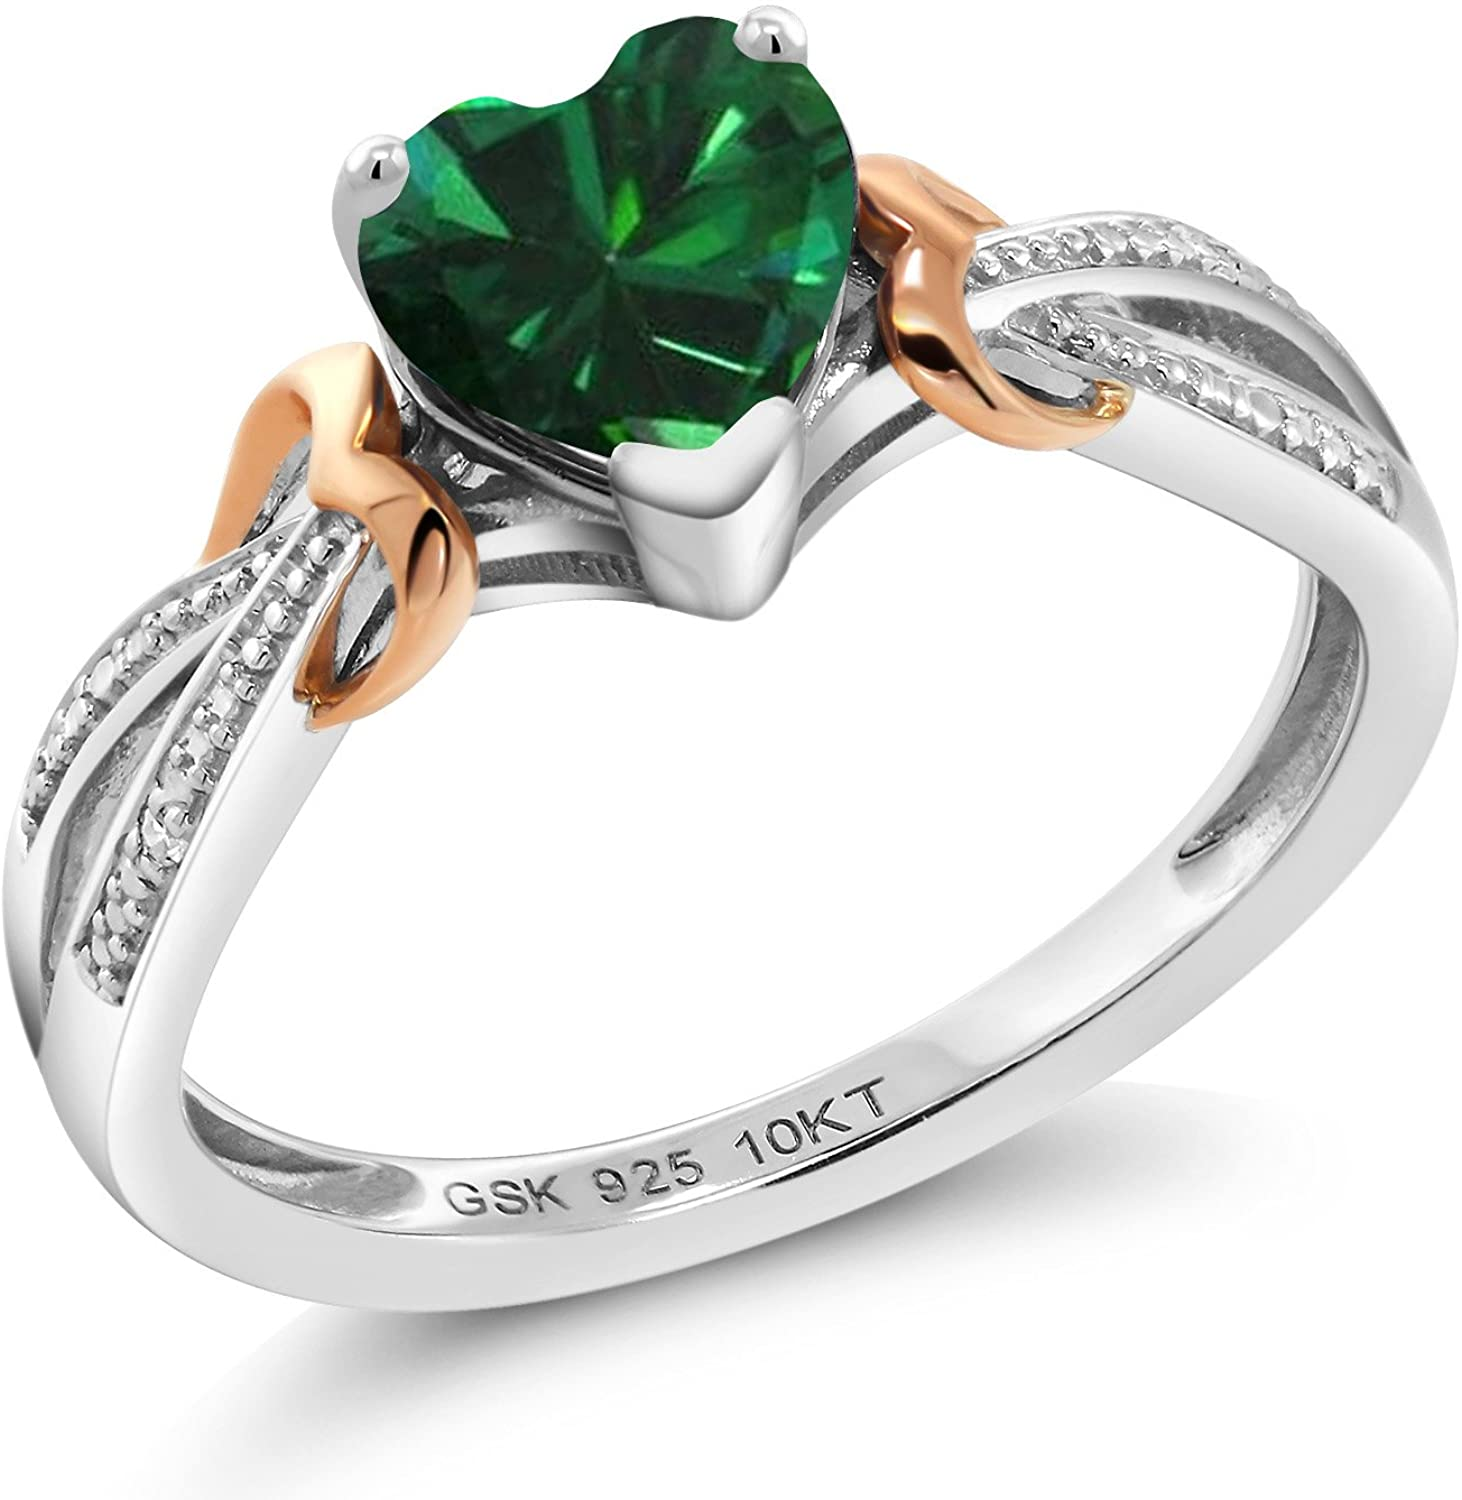 Gem Stone King 925 Sterling Silver and Solid 10K Rose Gold Simulated Emerald and Diamond Women Ring (0.69 Ct Heart Shape, Available in size 5, 6, 7, 8, 9)